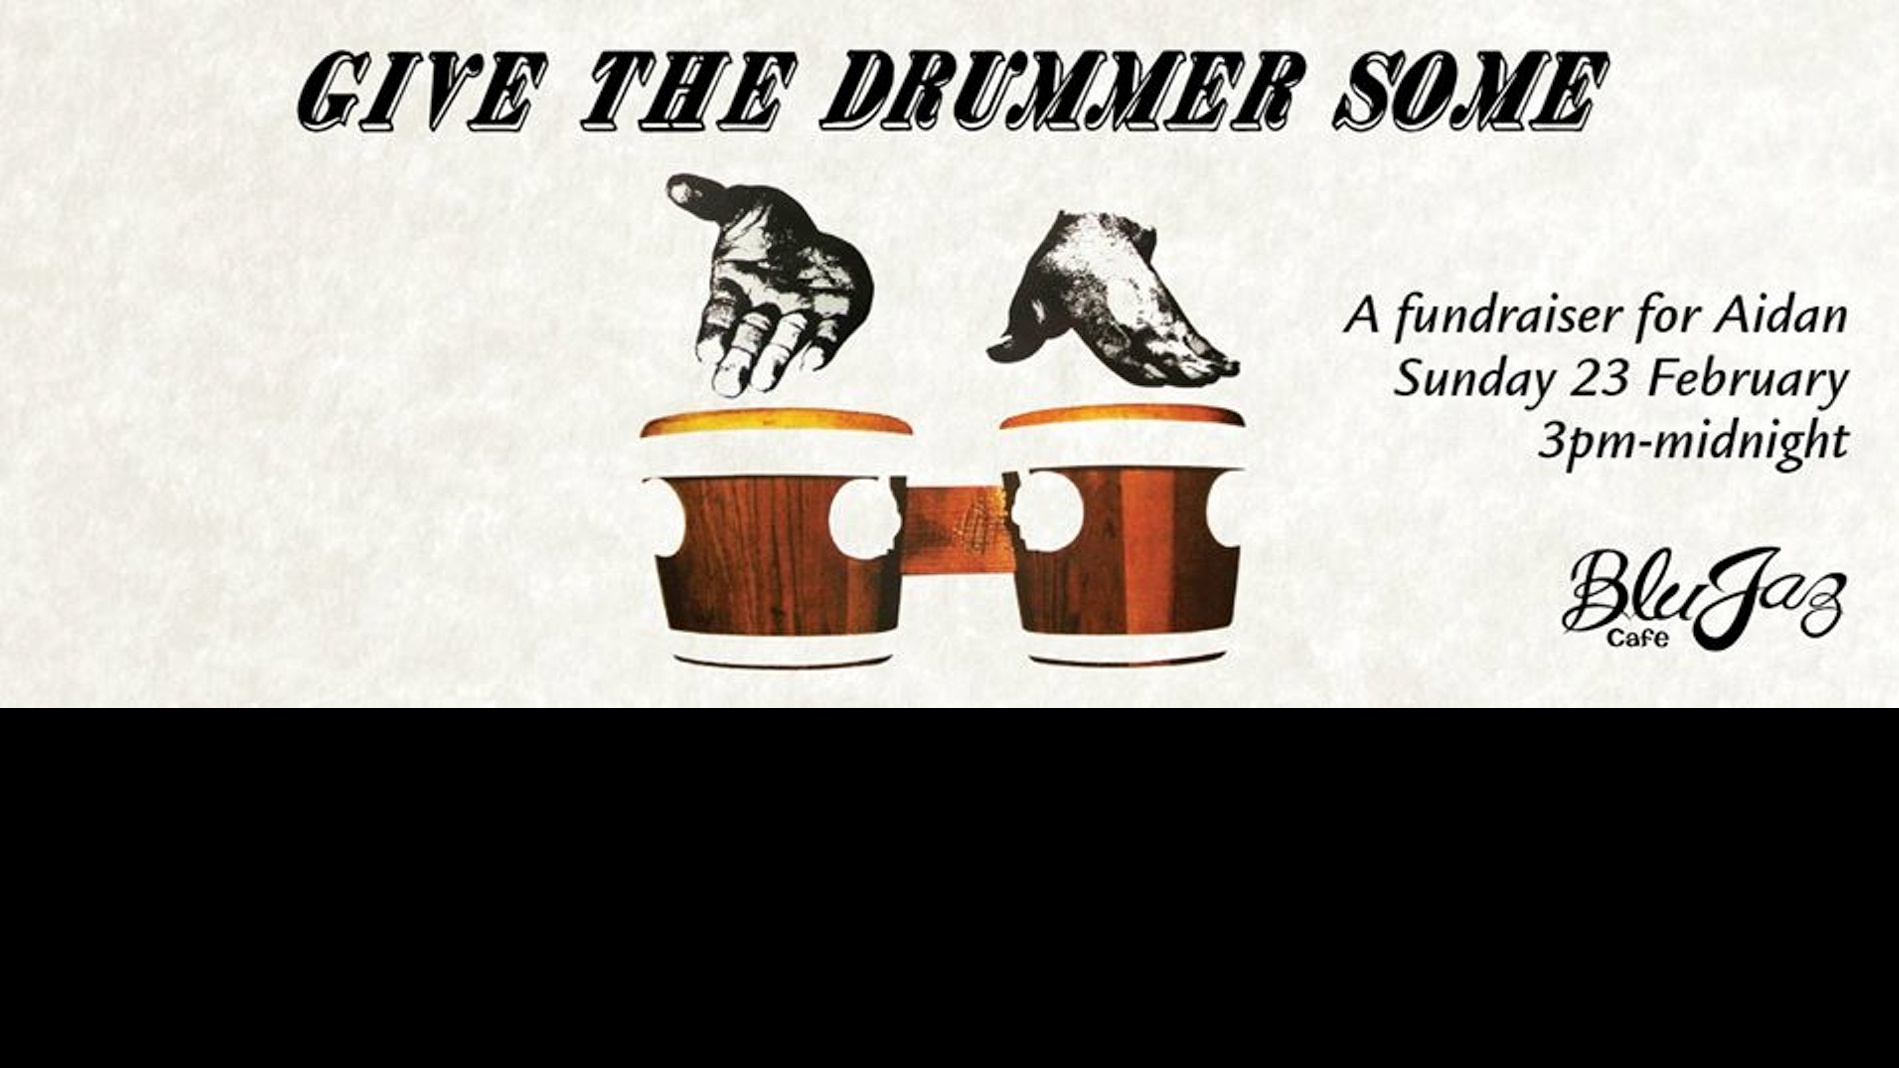 Give The Drummer Some - A Fundraiser